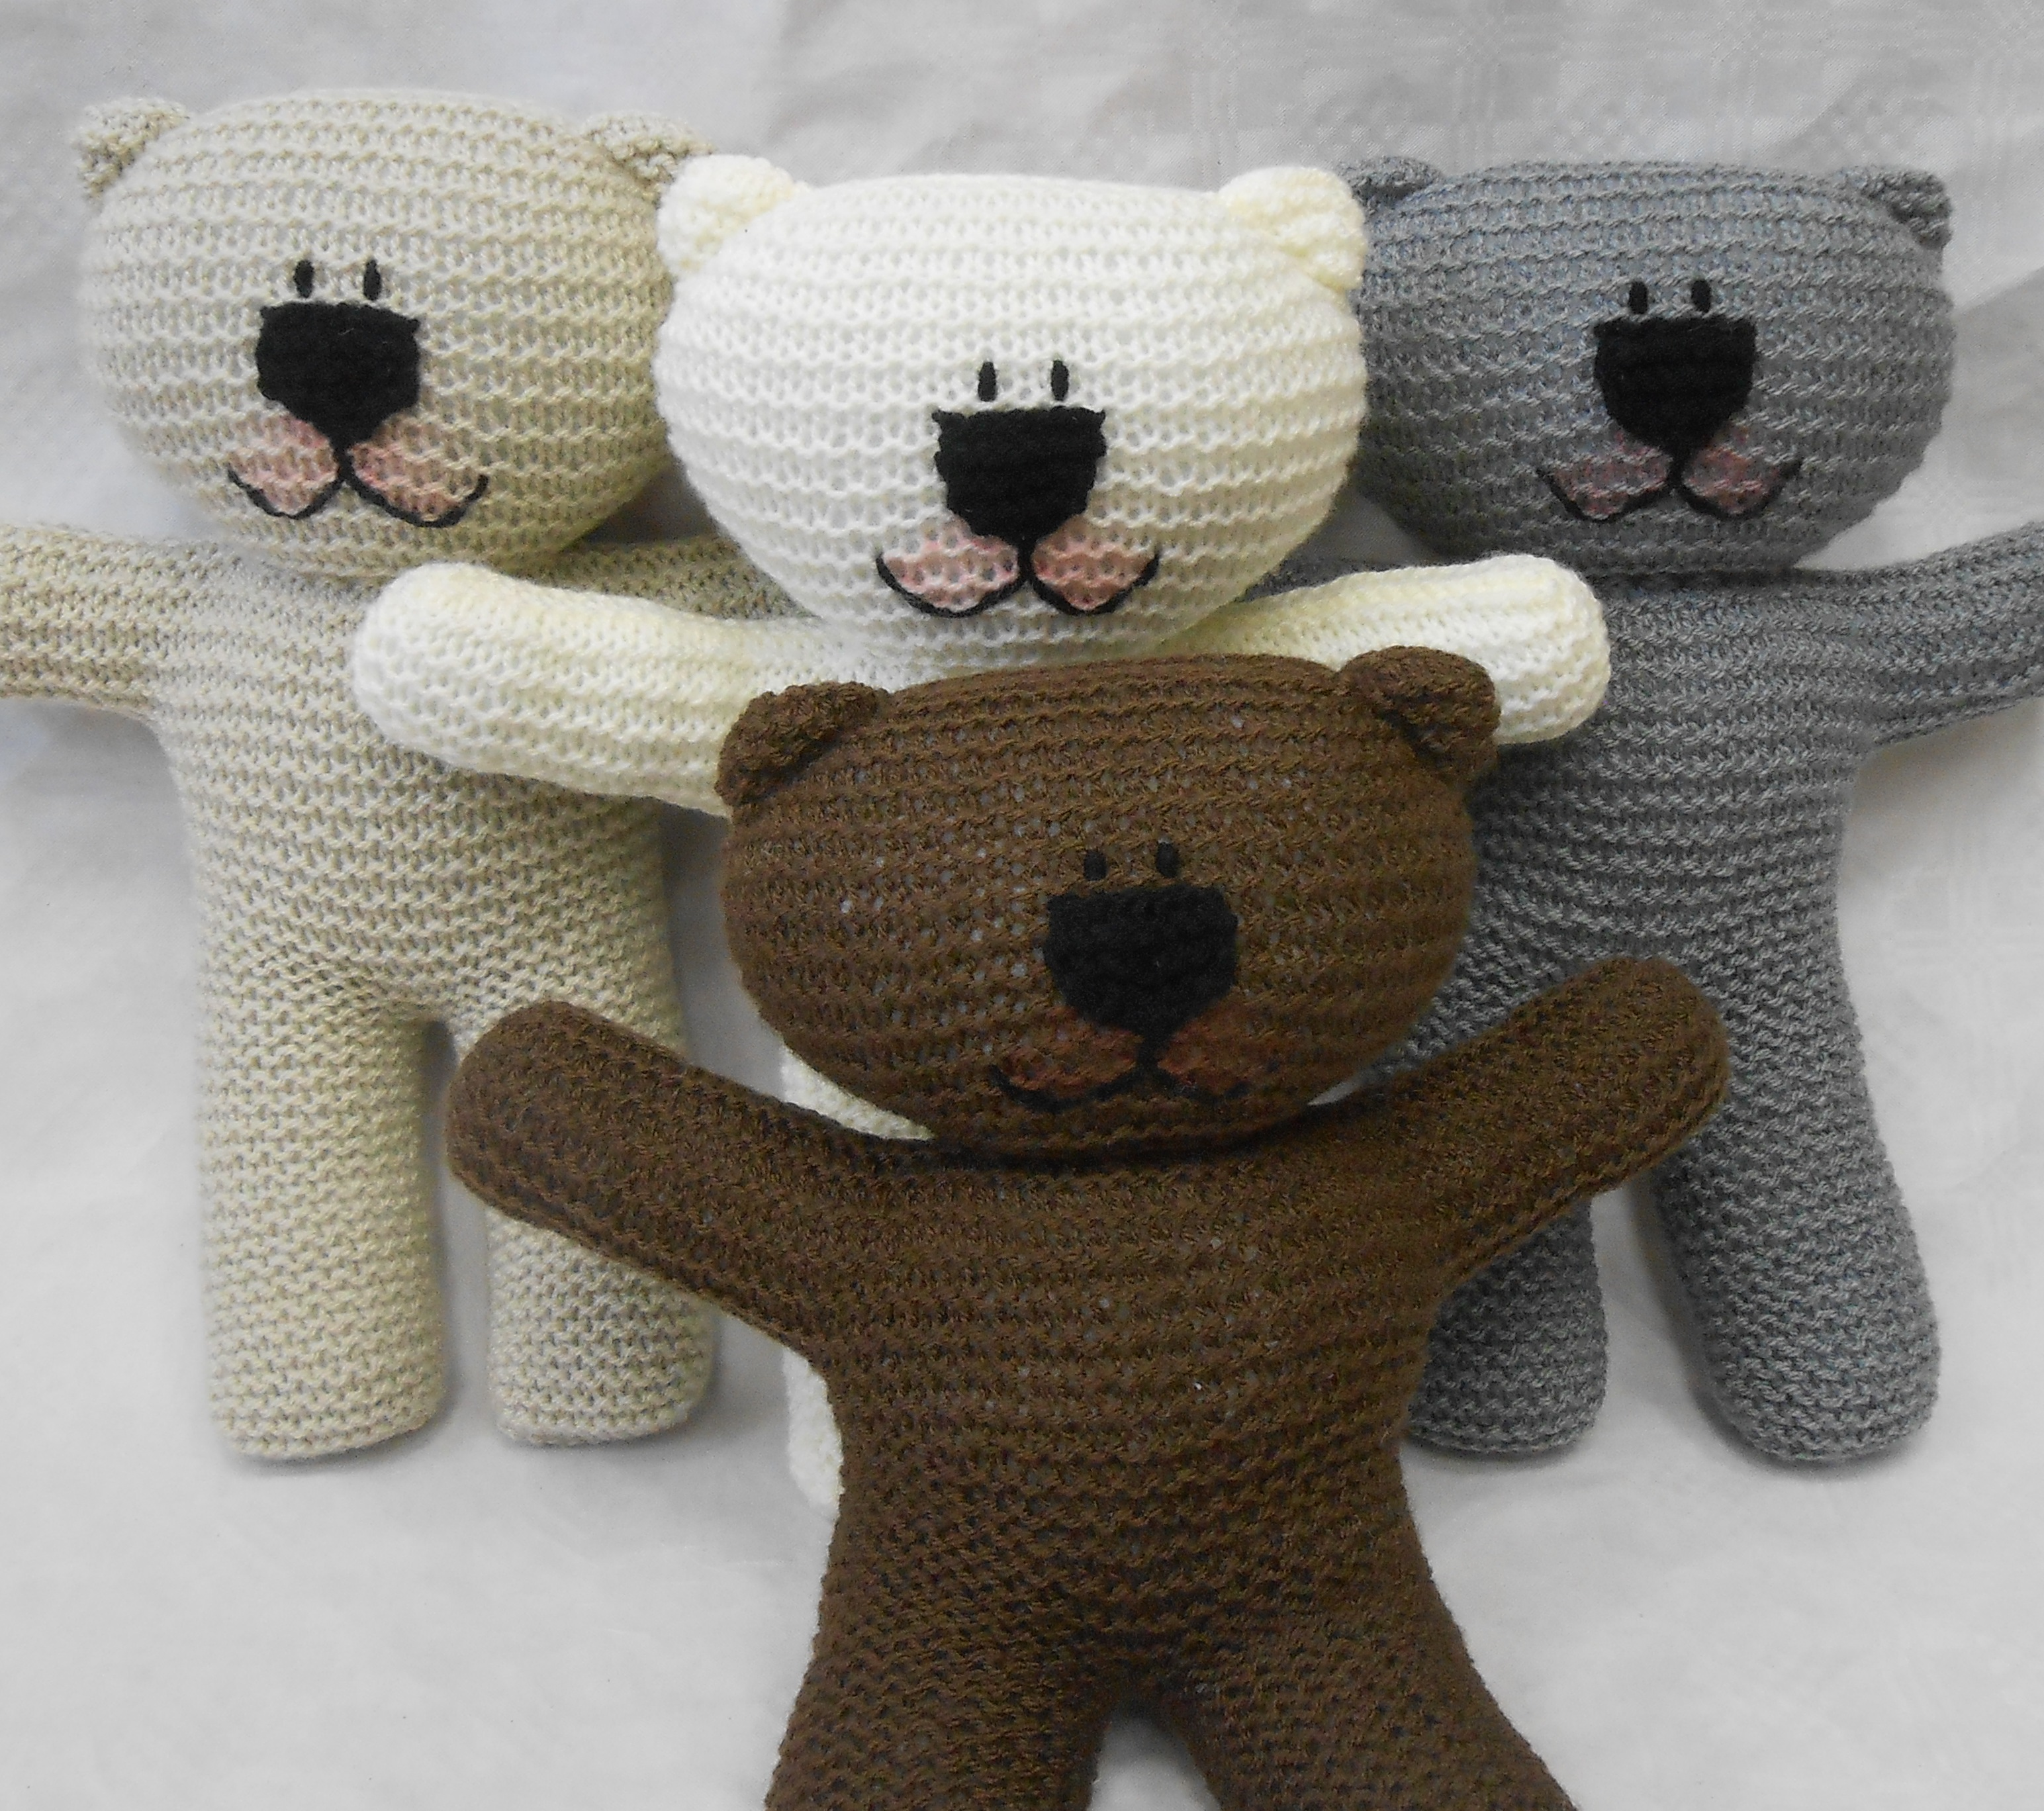 Contemporary Teddy Bear Knitting Pattern Free Image - Easy Scarf ...